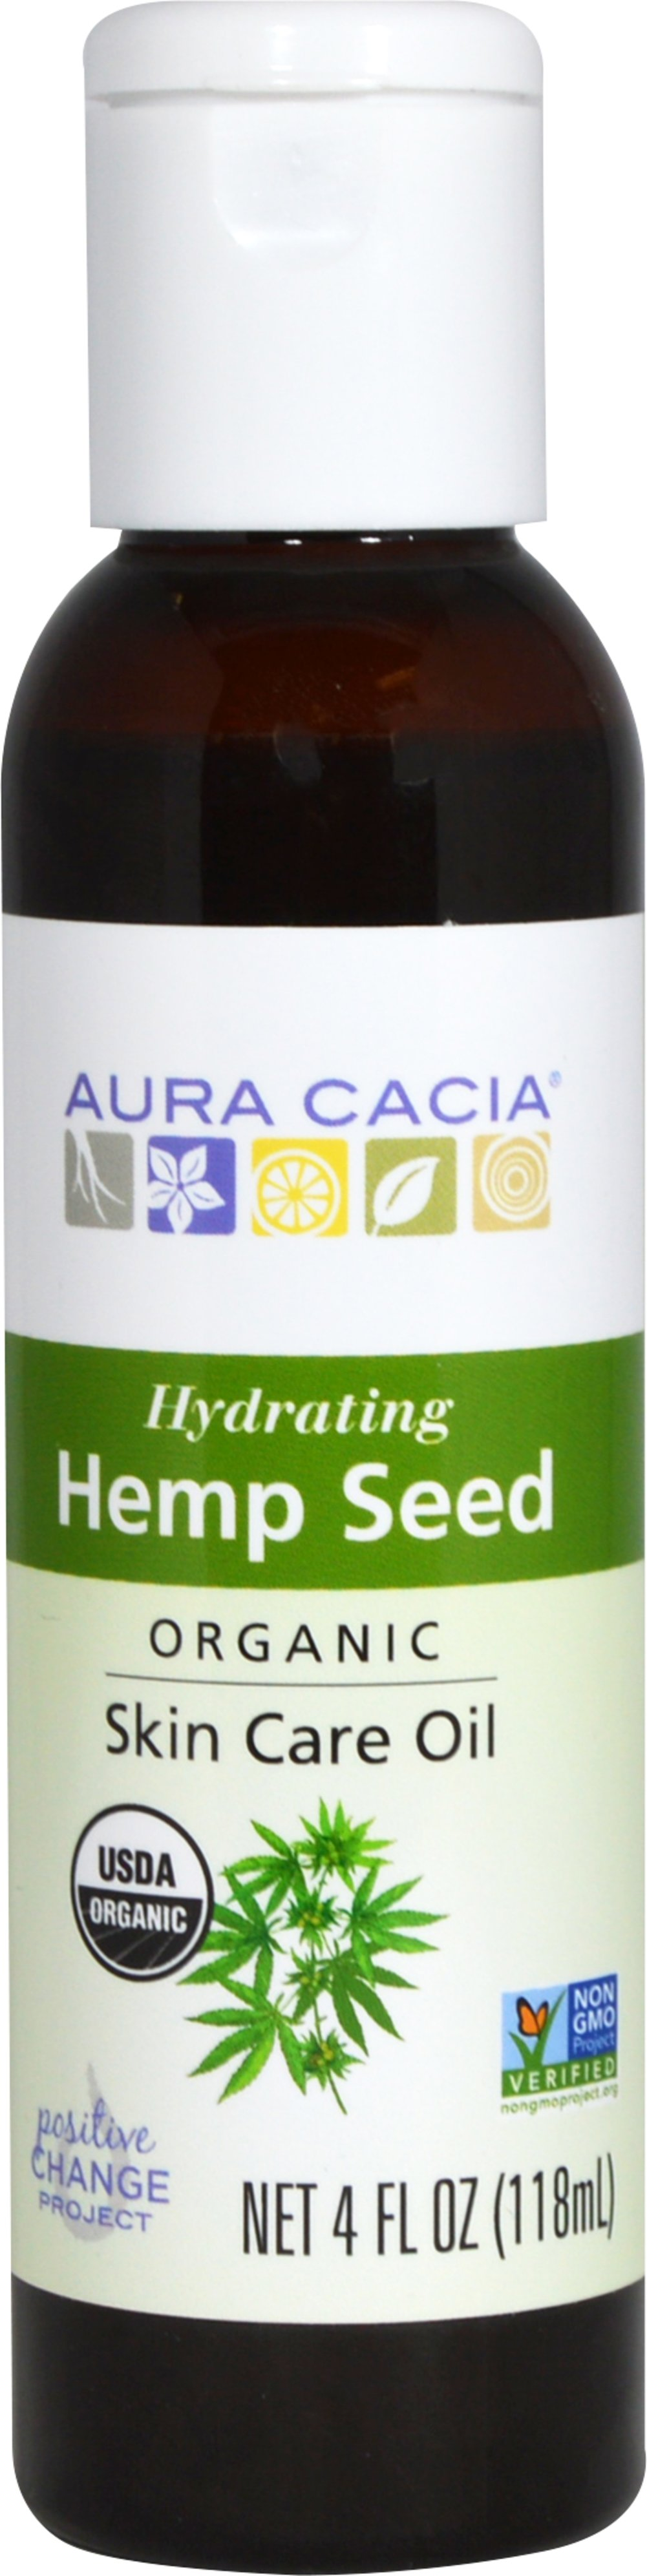 Organic Hemp Seed Skin Care Oil